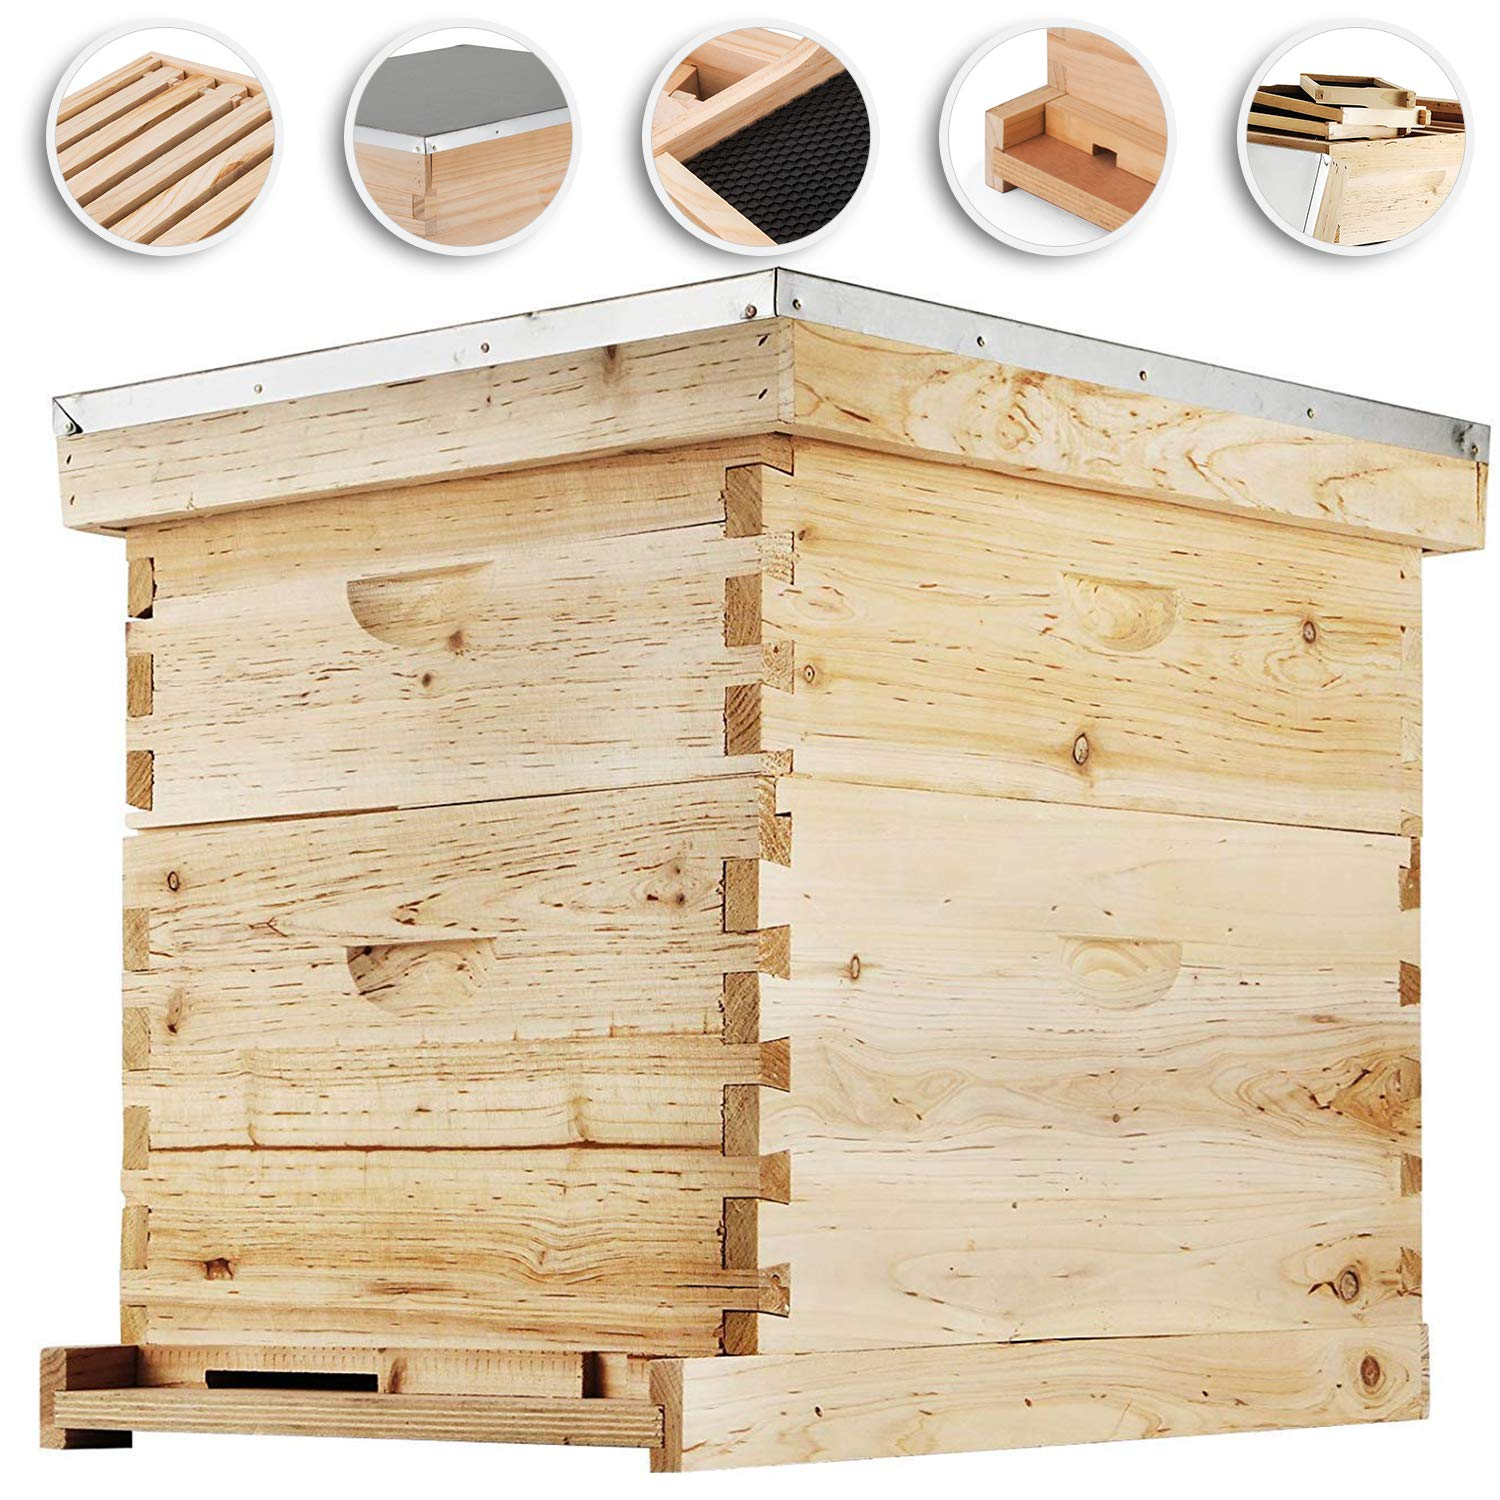 Happybuy Bee Hive 20 Frame Beehive Box 10 Deep and 10 Medium Frames Langstroth Wooden Beehive Kit for Beginners and Pro Beekeepers by Happybuy